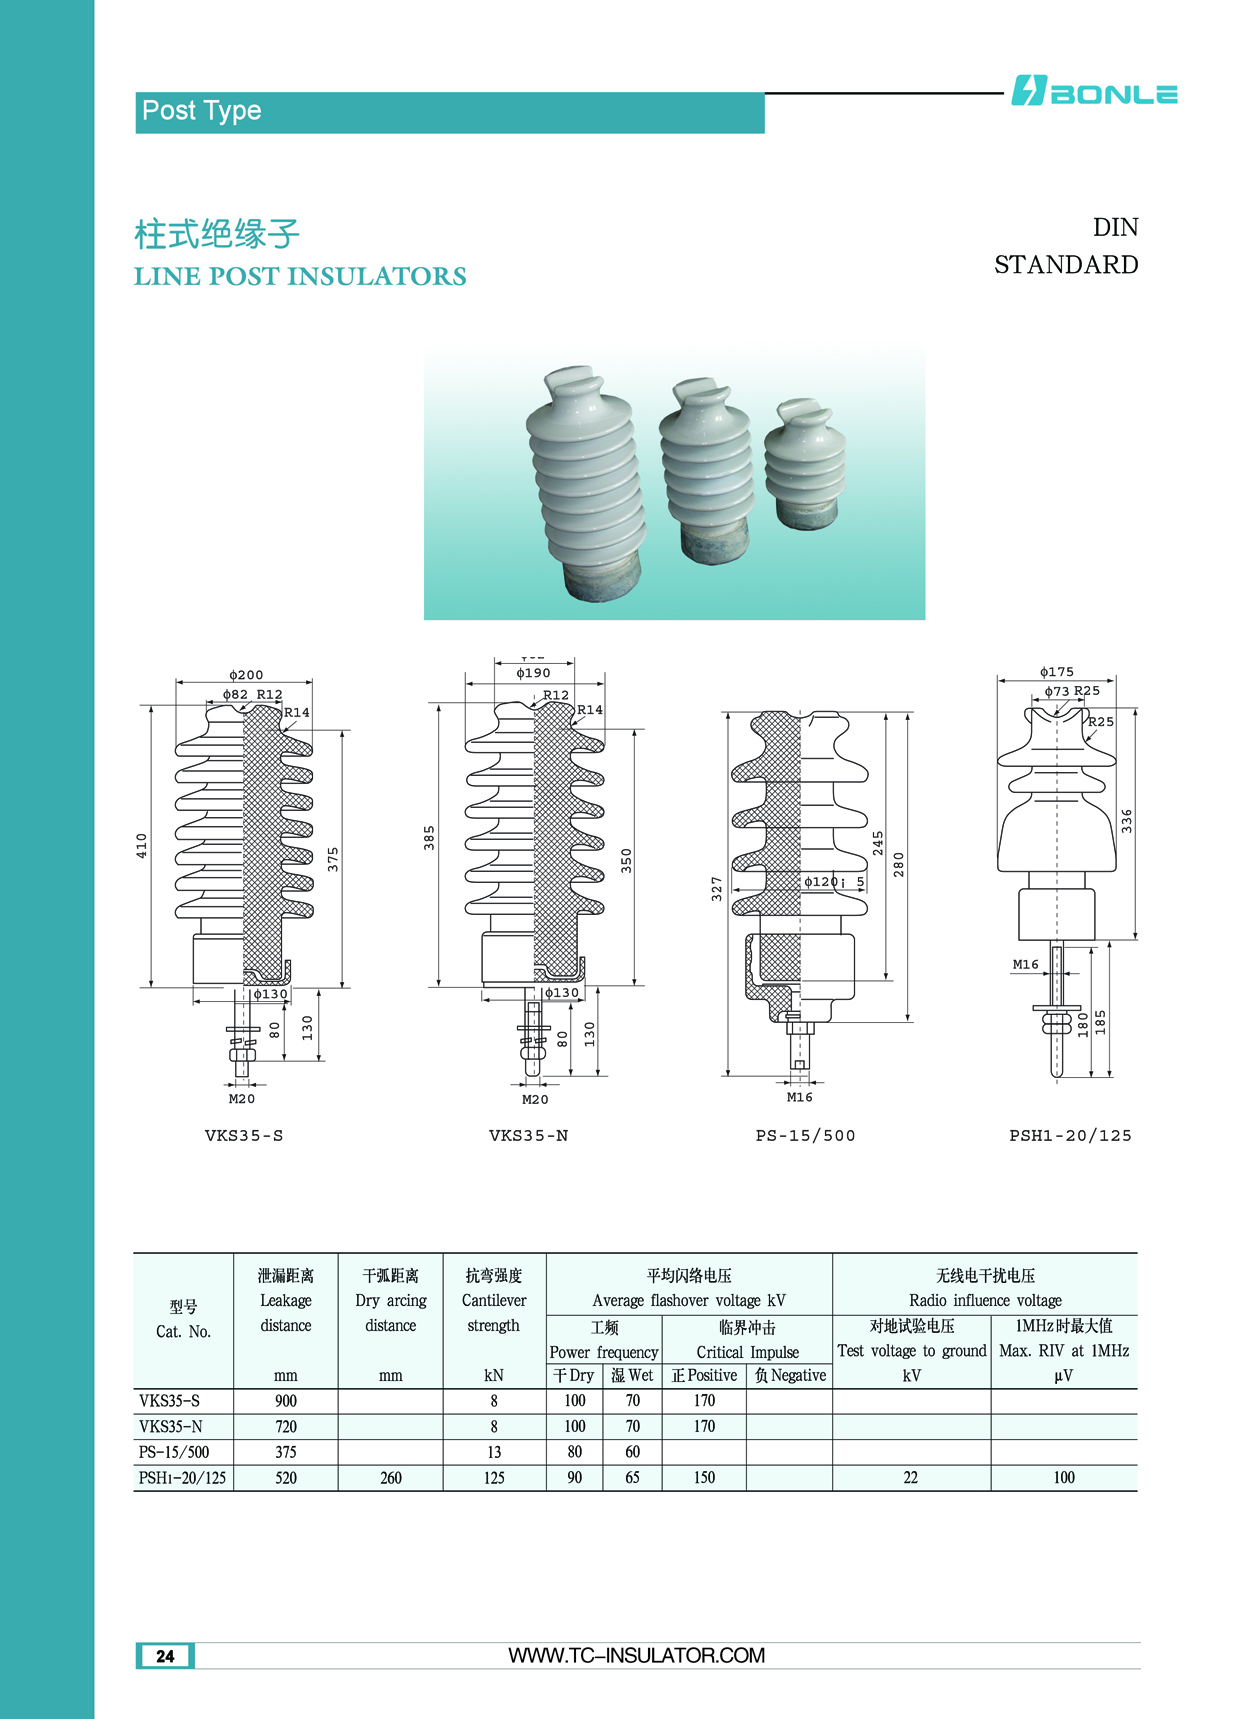 Line Post Insulators DIN standard